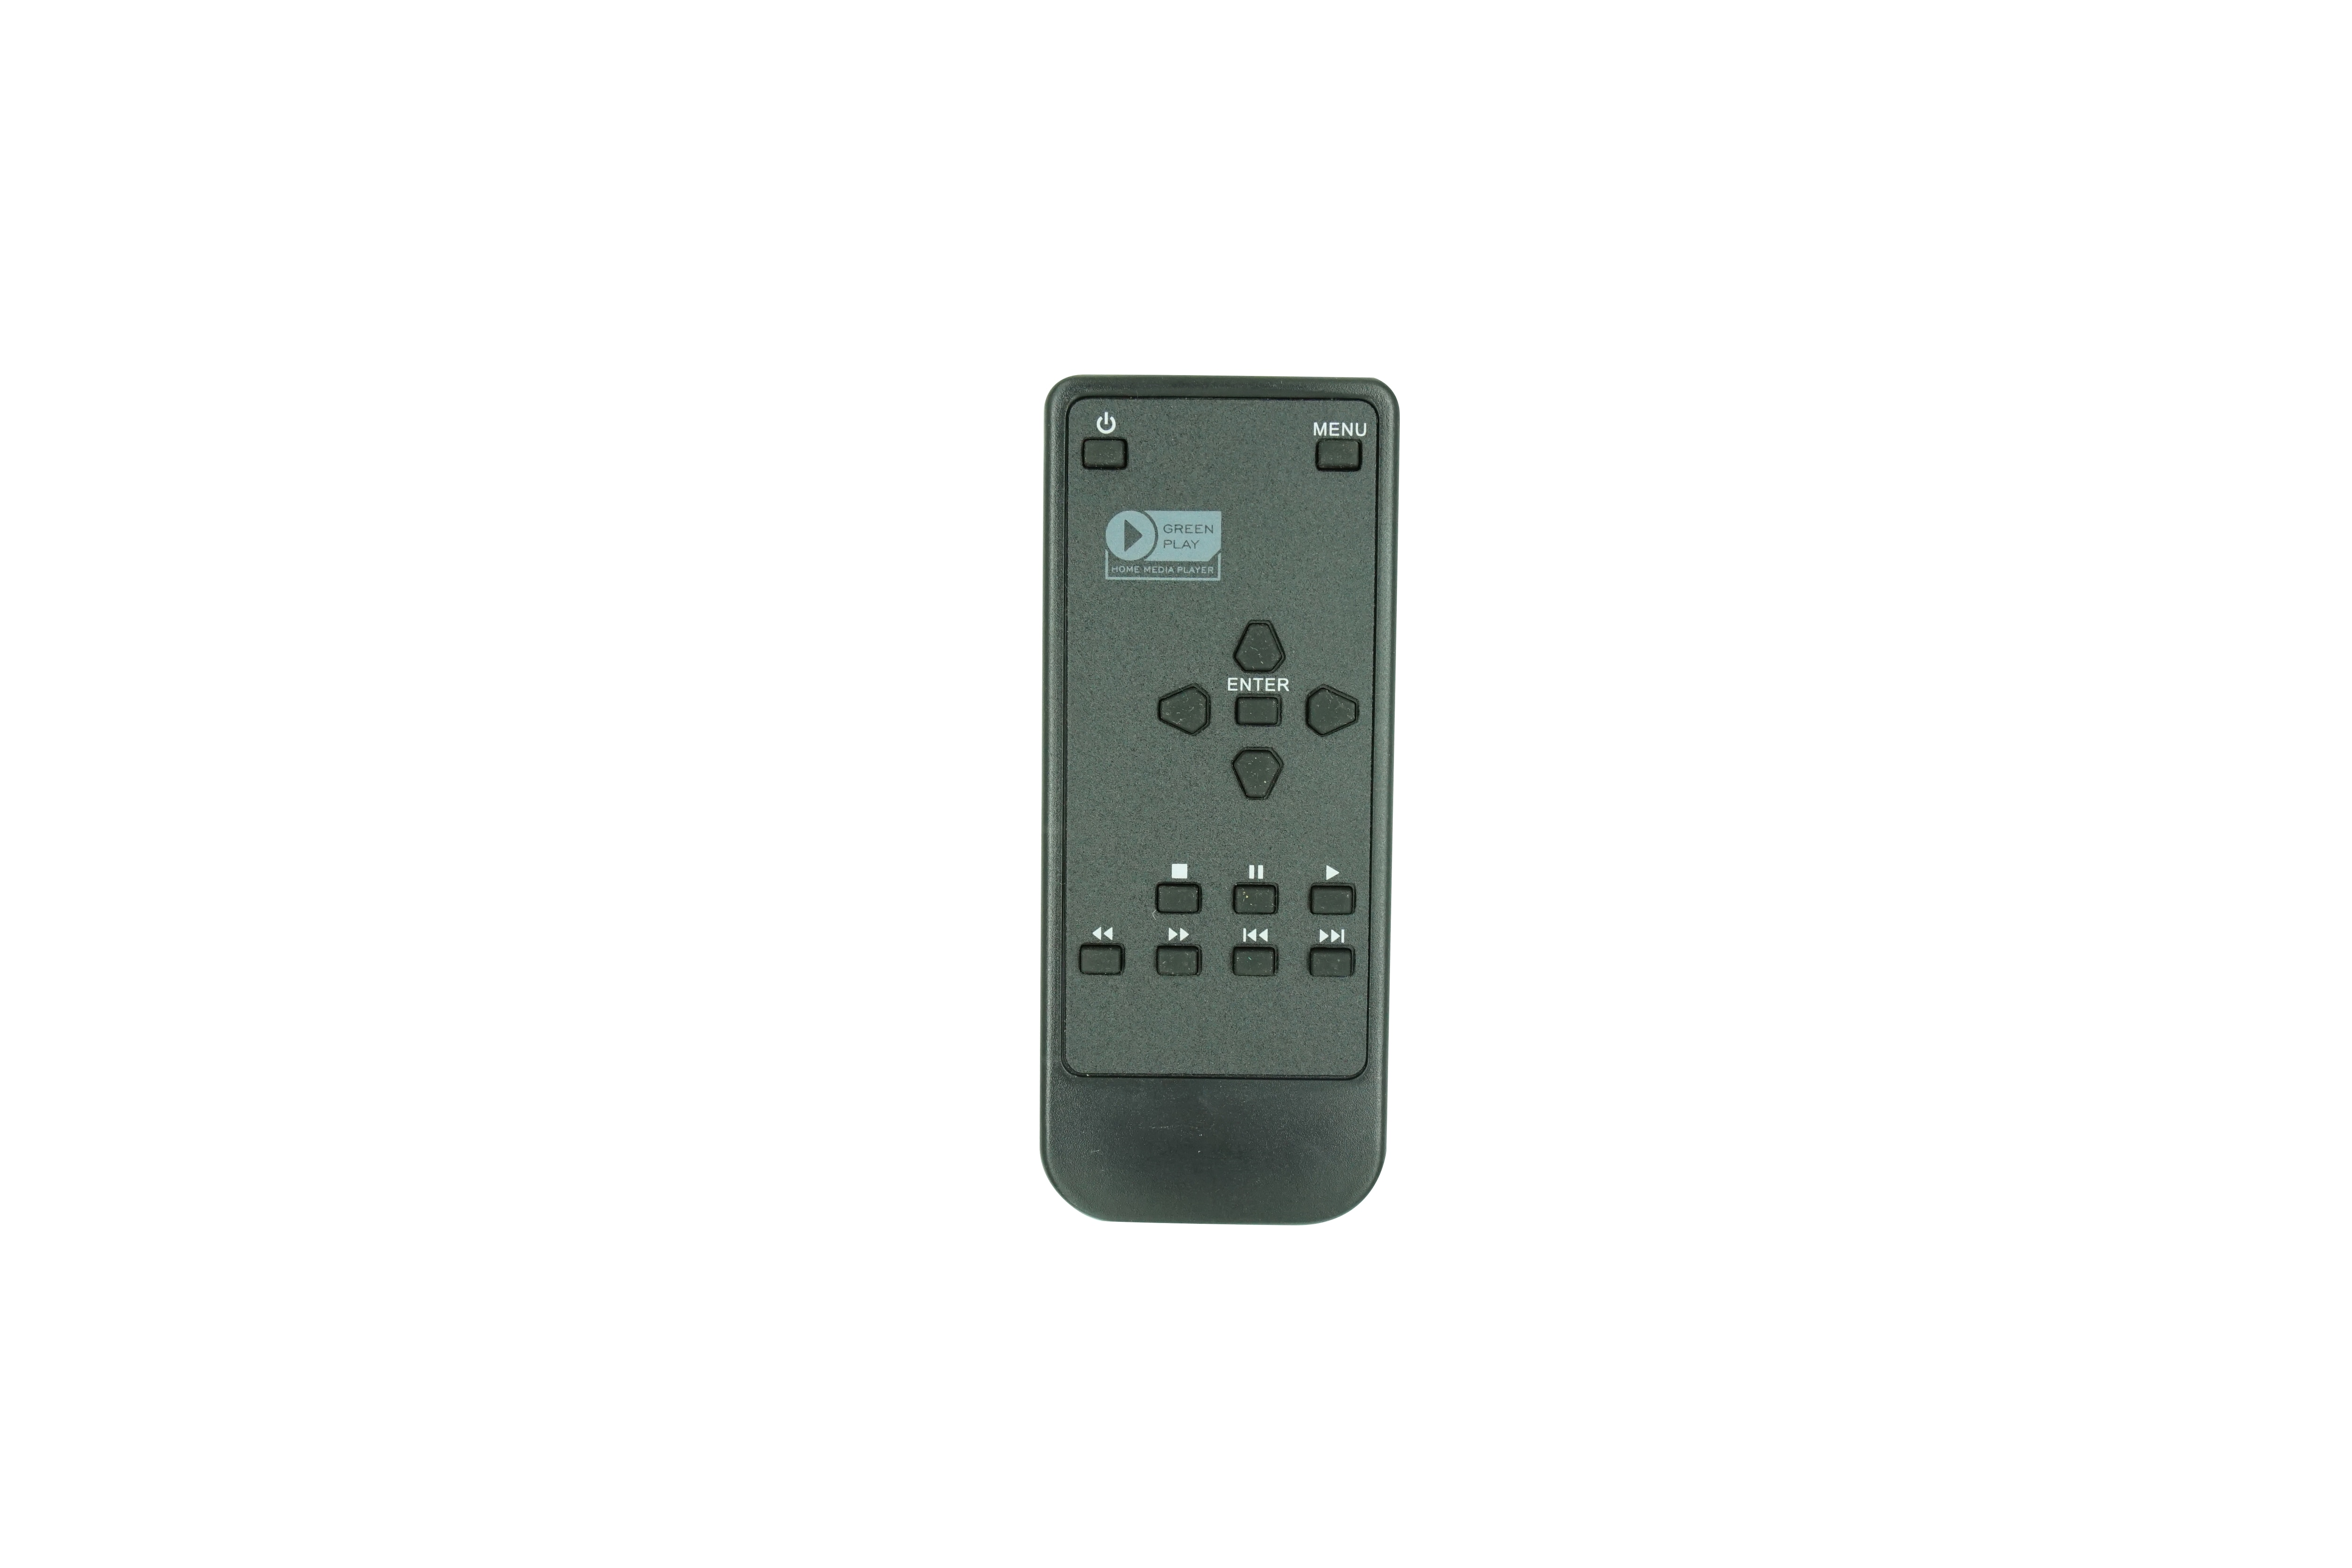 Remote Control For GREEN PLAY GREENPLAY HOME MEDIA PLAY system